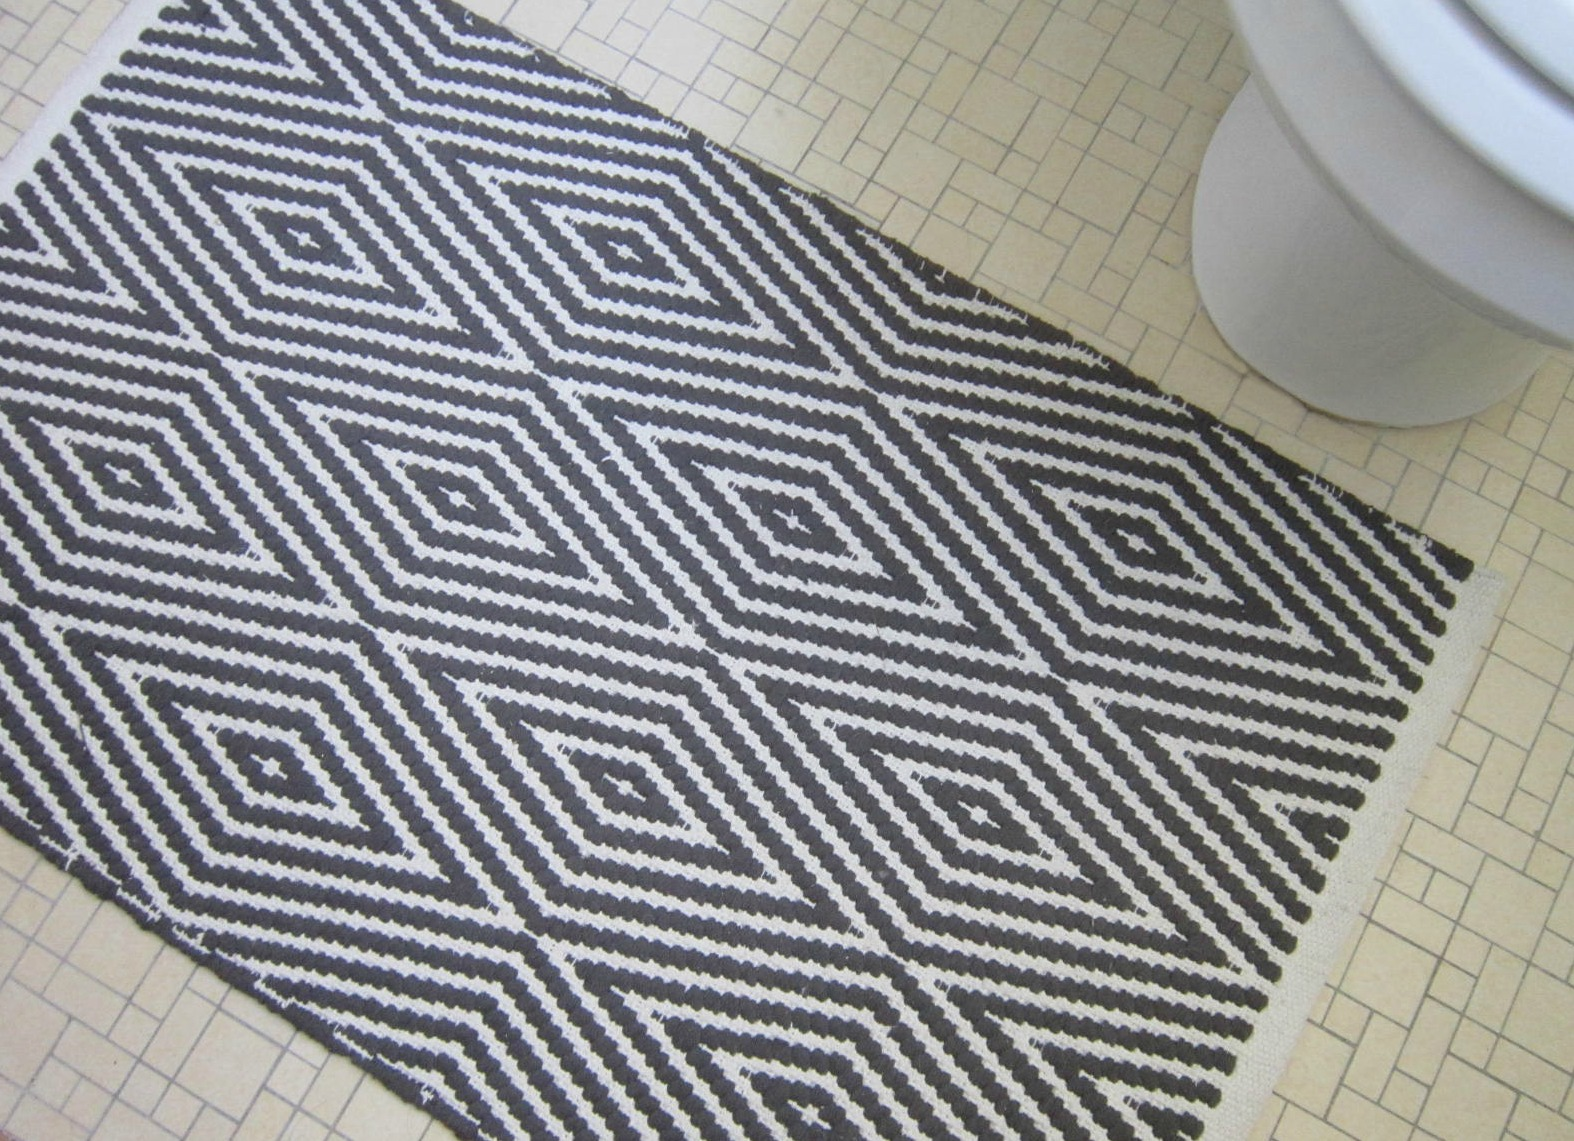 Original This Bath Mat Is By Thomas Paul For All Modern I Really Fell For His